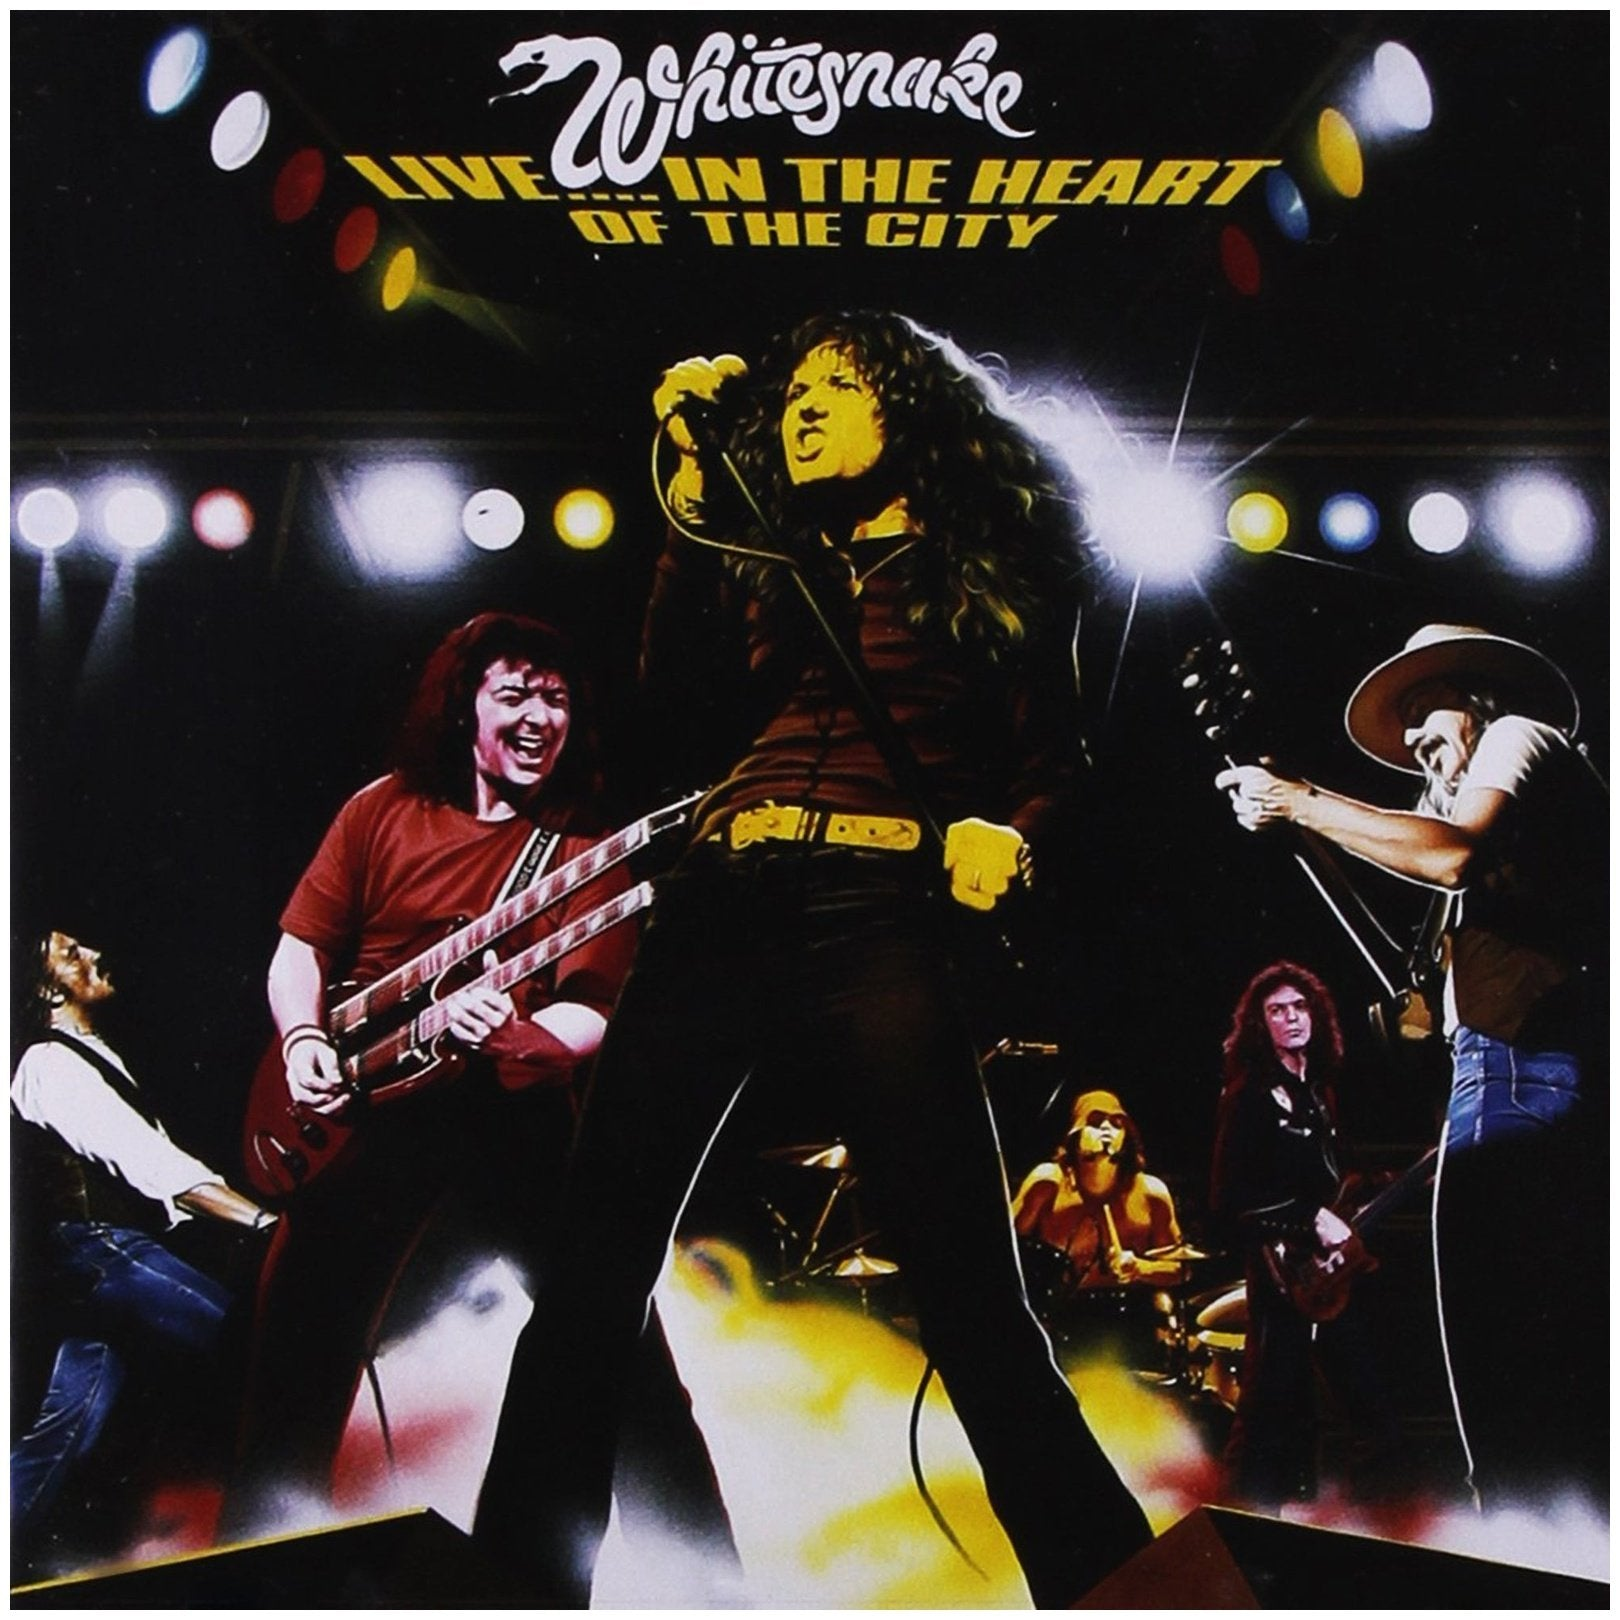 Whitesnake - Whitesnake - Live In The Heart Of The City - 2 Cd